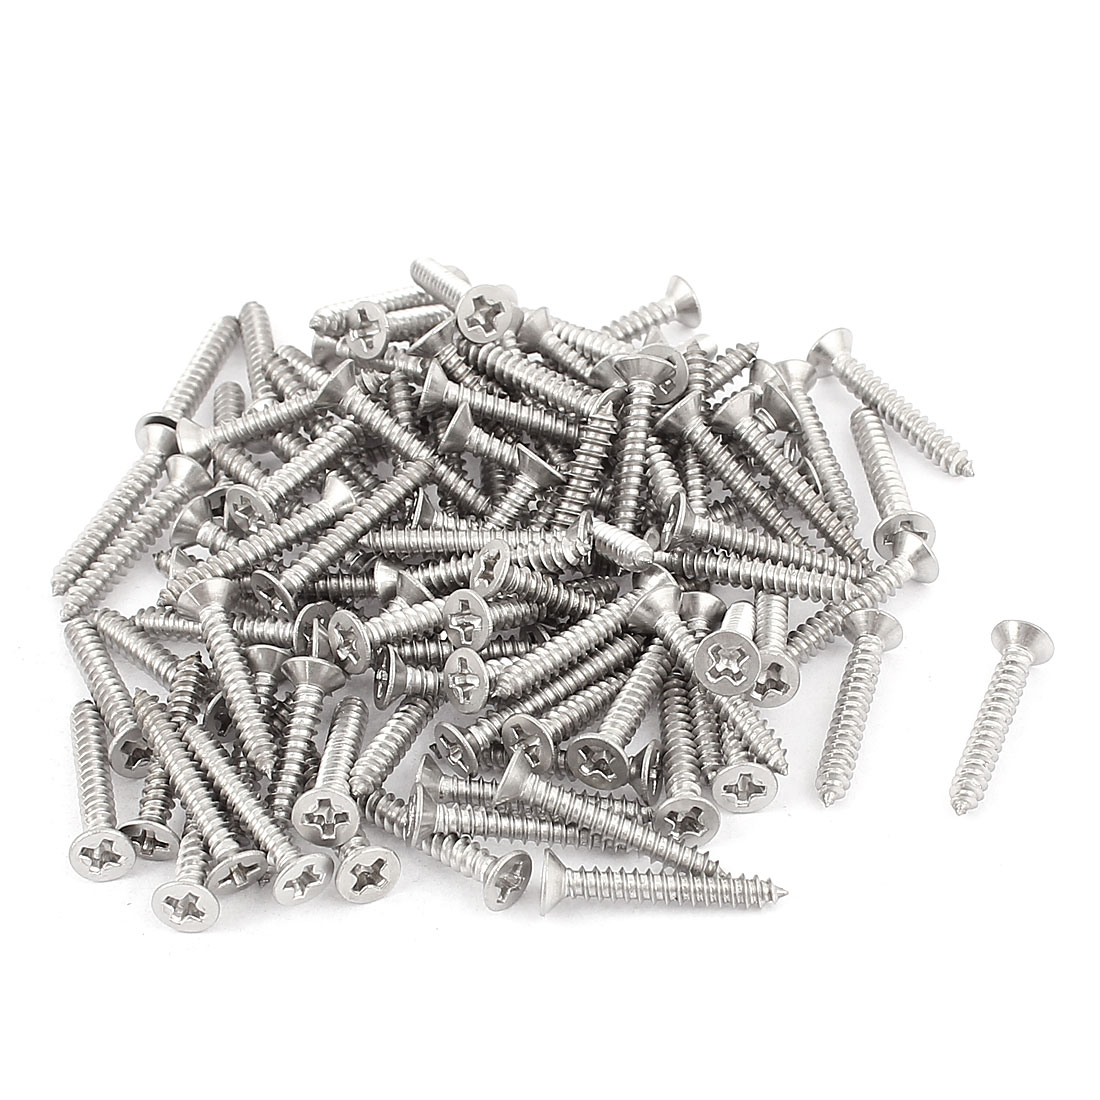 M3x20mm Phillips Flat Head Stainless Steel Self Tapping Screws Fastener 100Pcs